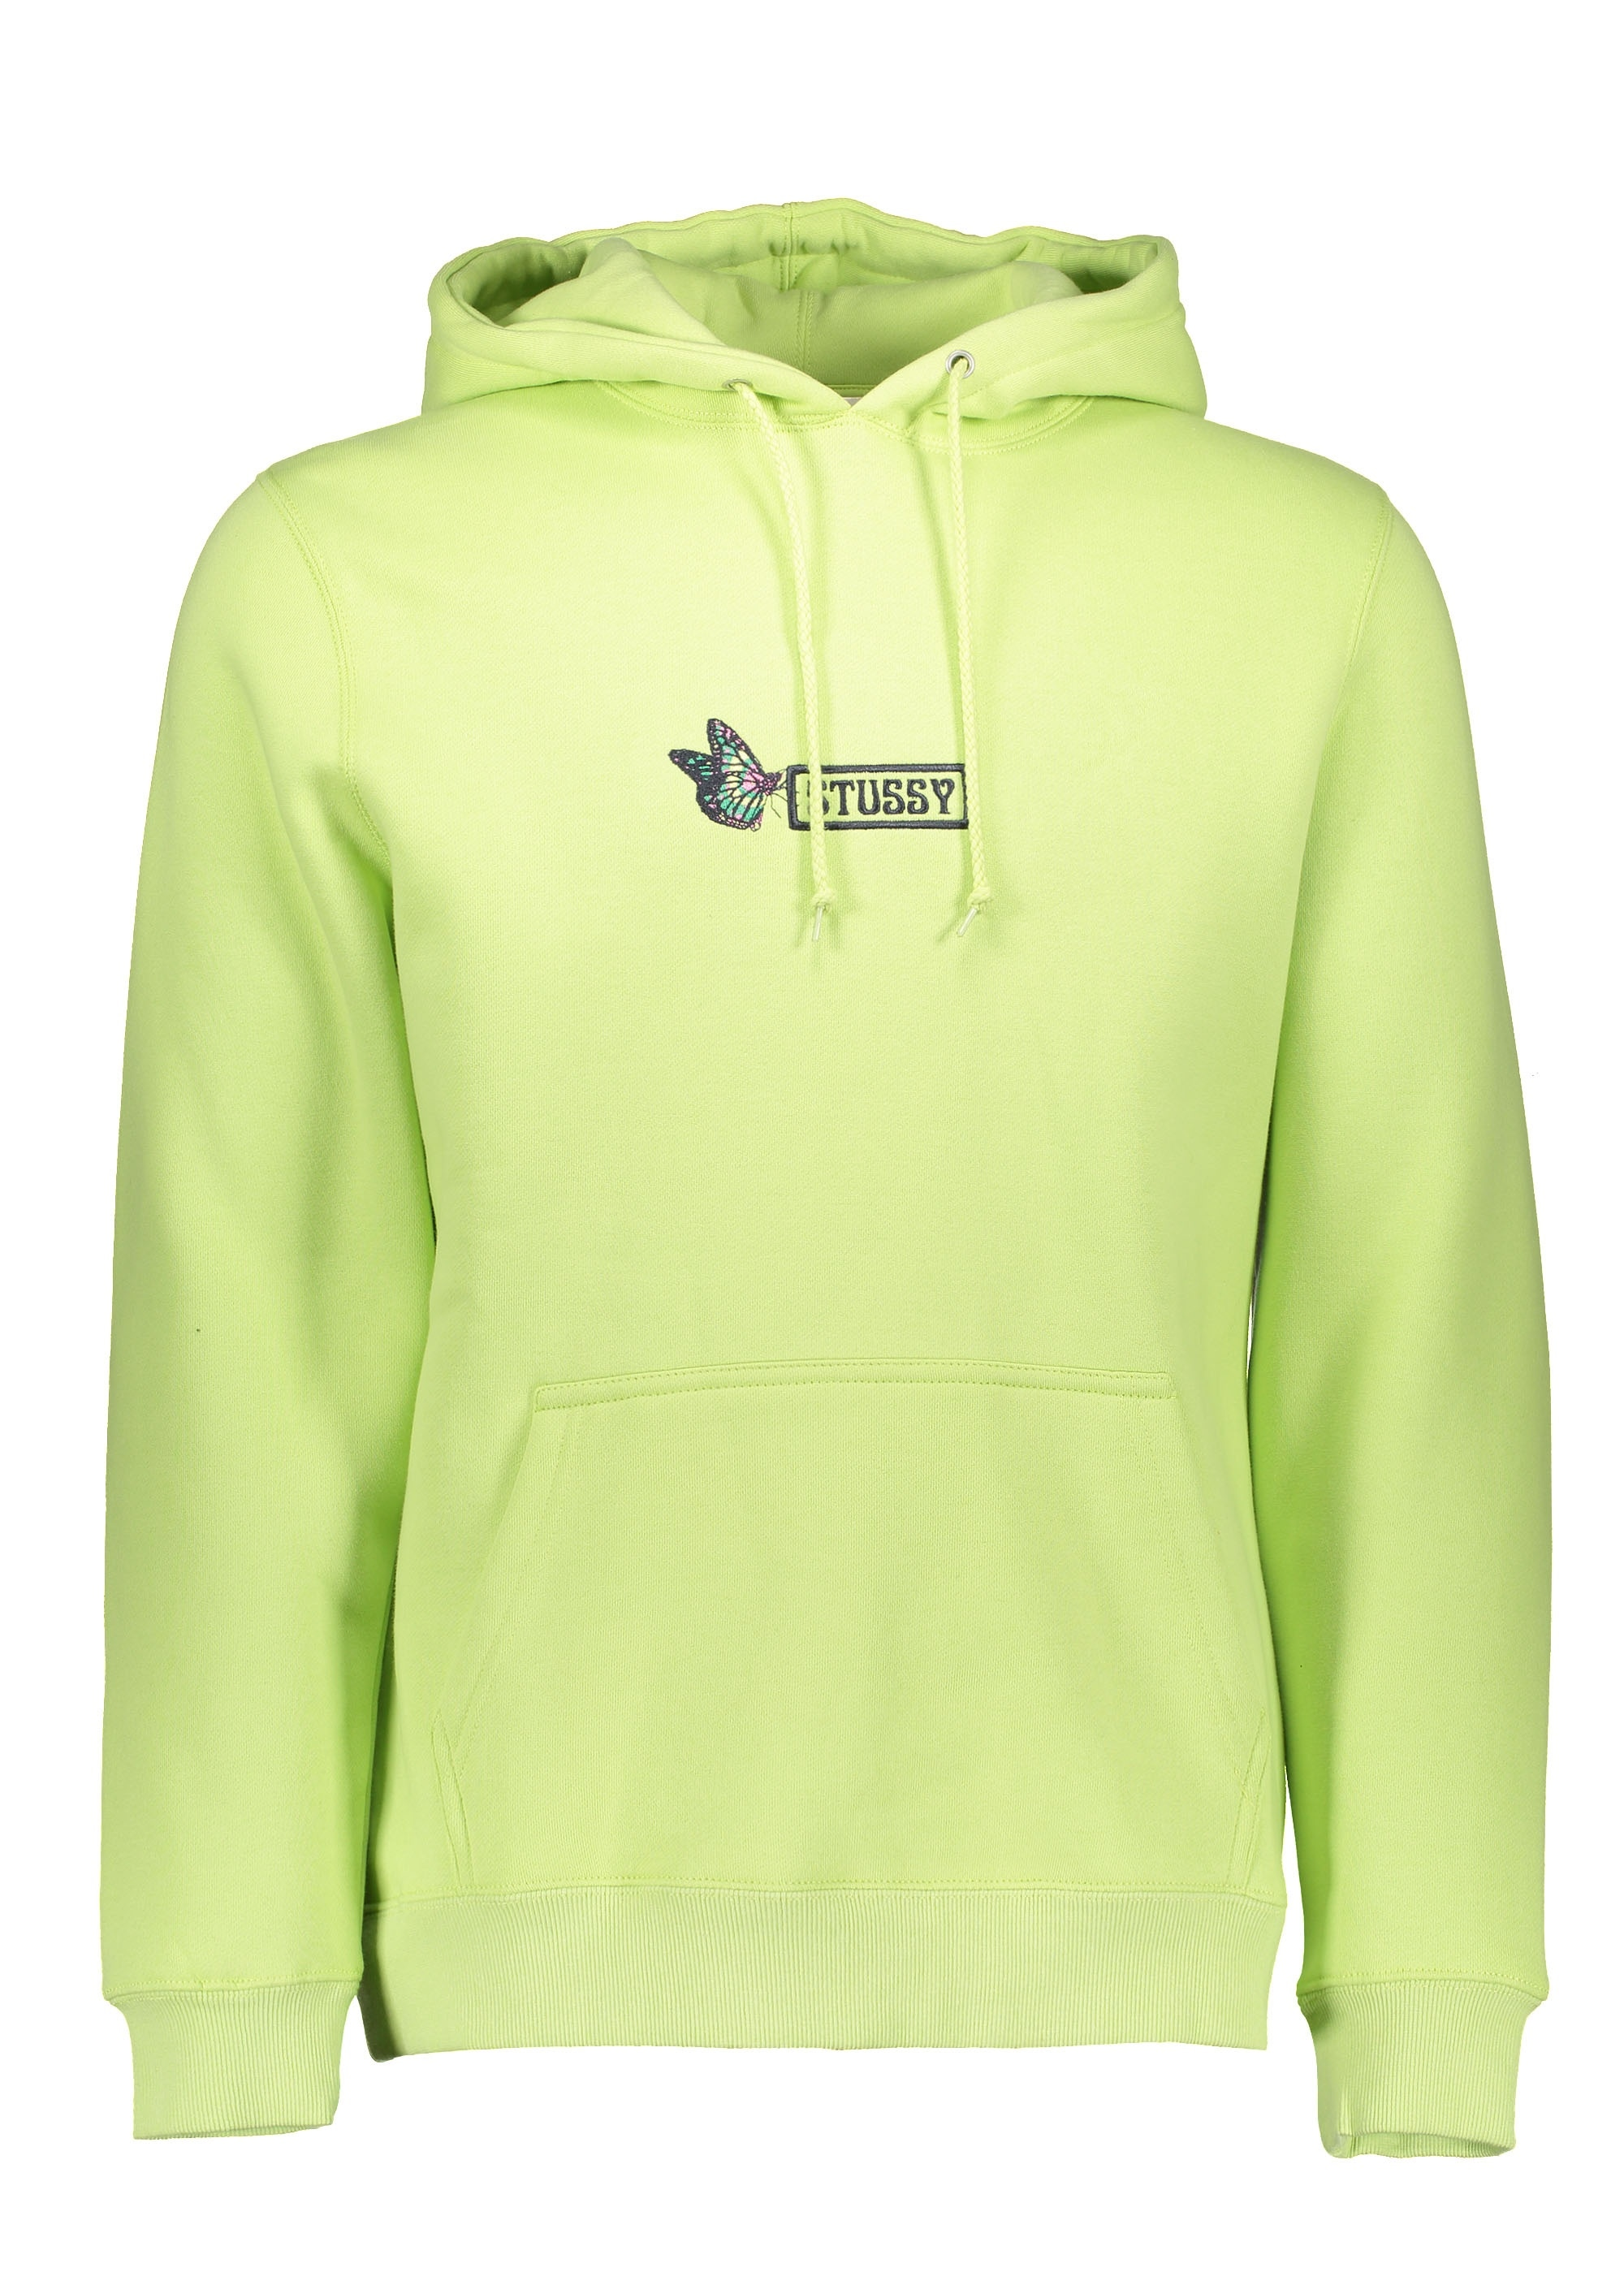 9266424929 Stussy Butterfly Applique Hoodie - Pale Green